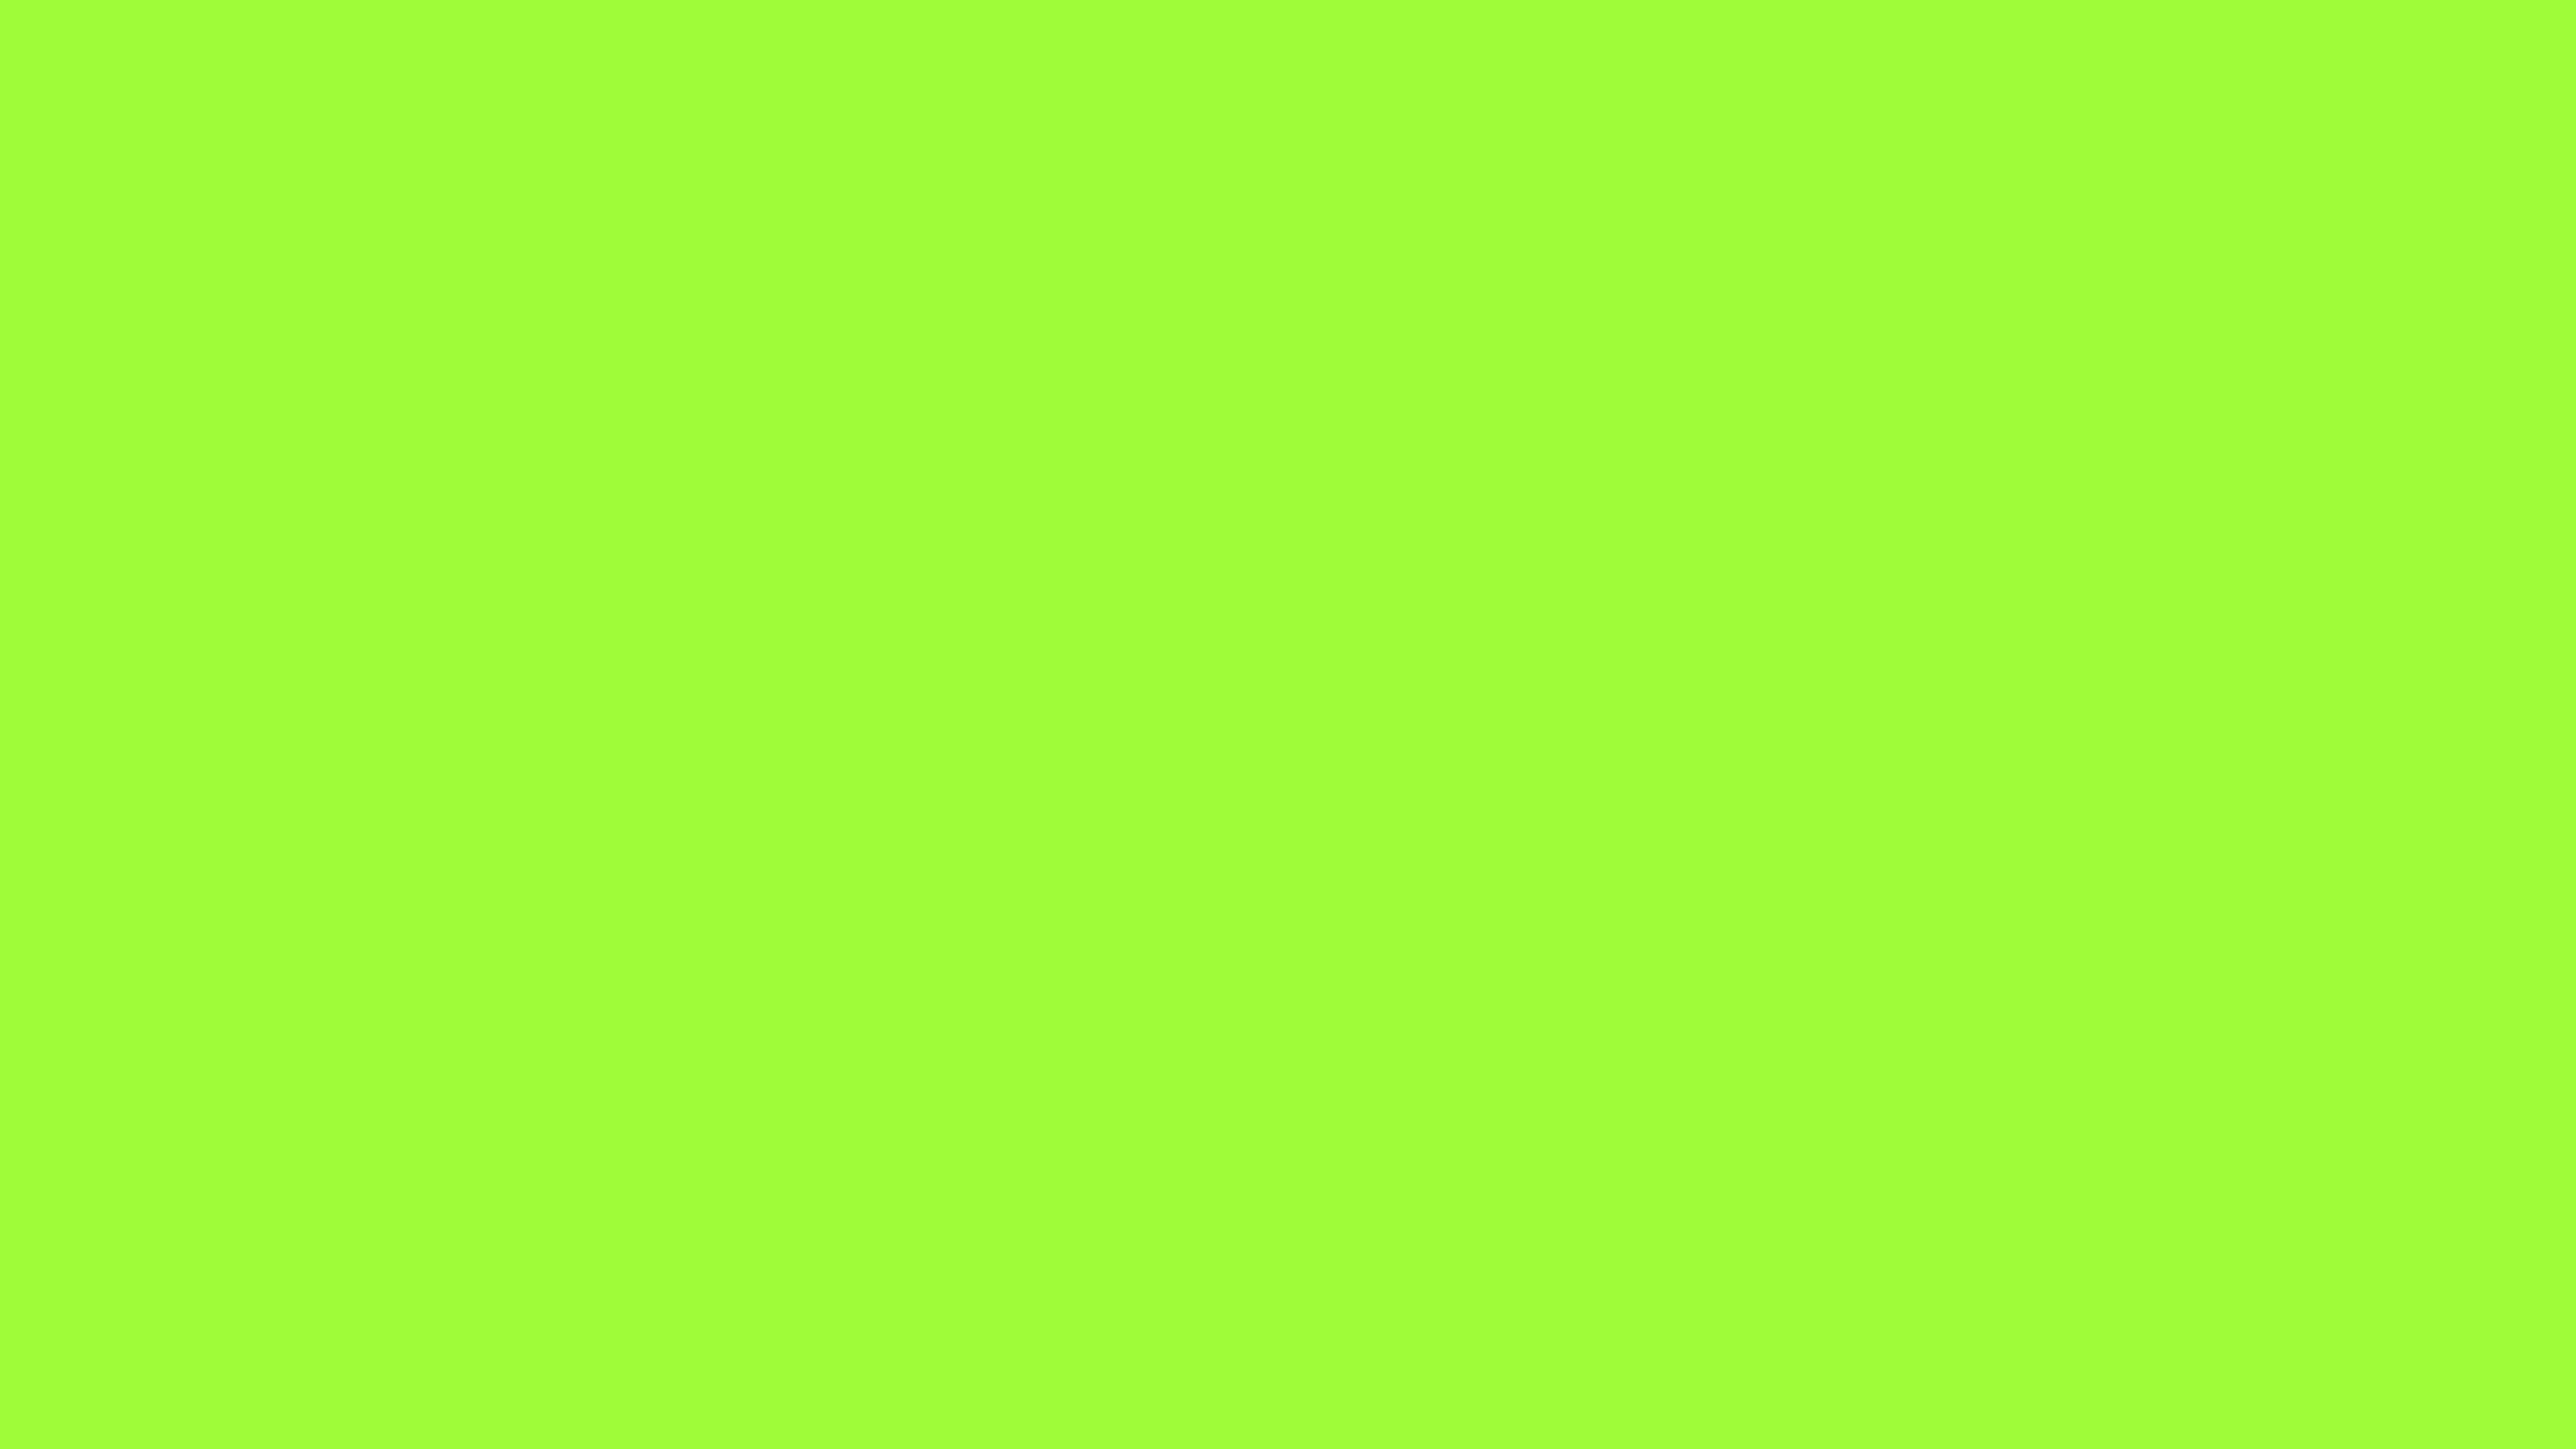 3840x2160 French Lime Solid Color Background